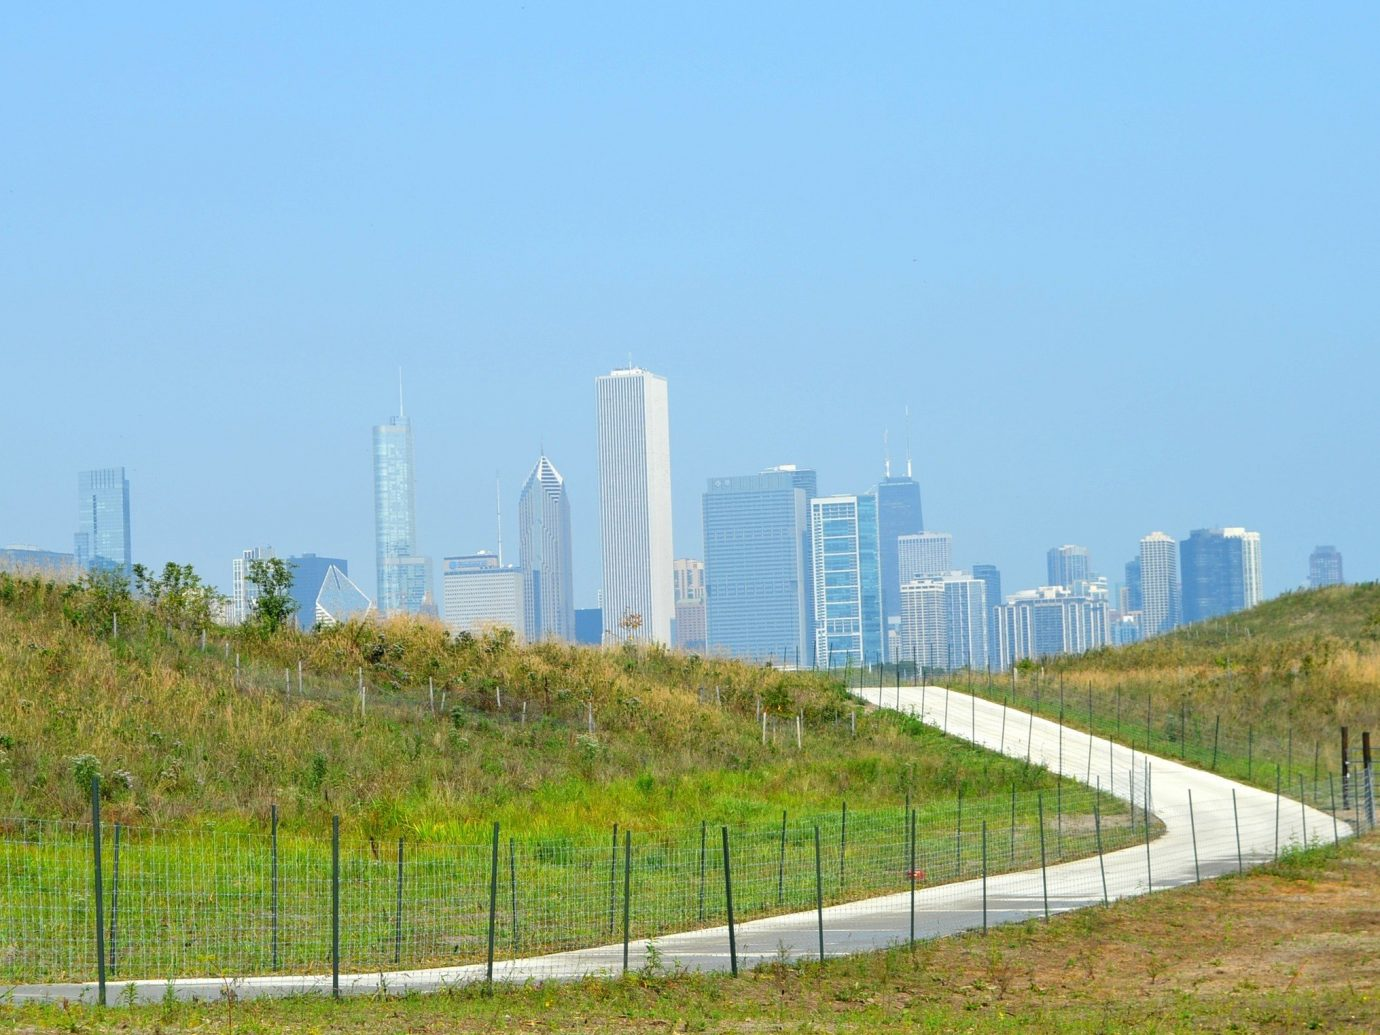 Summer Series grass sky outdoor field transport horizon skyline human settlement outdoor structure Fence tower highway grassy skyscraper pasture lush land